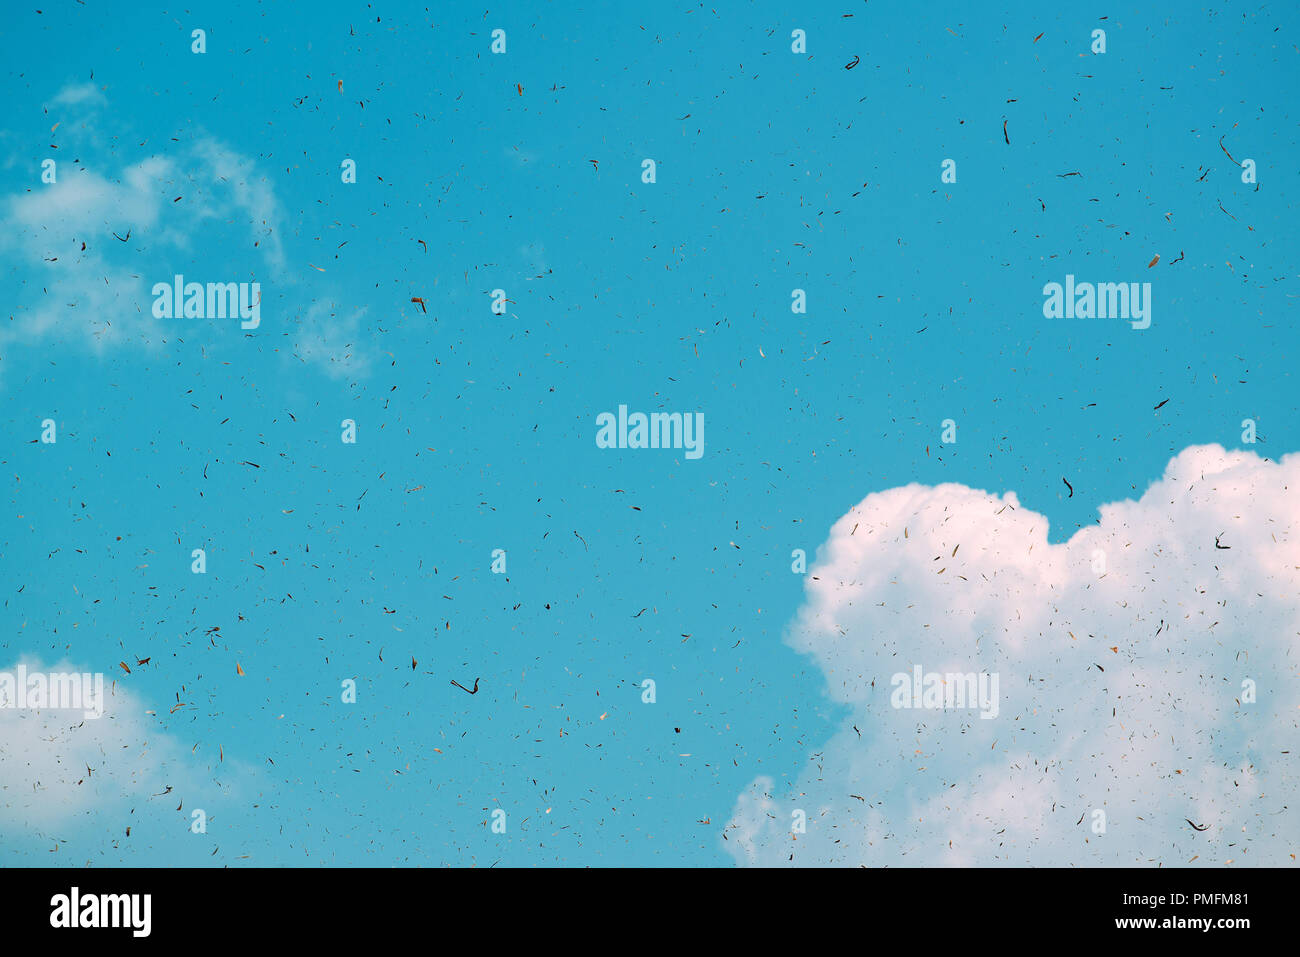 Dust and dirt particles in the air as grunge background - Stock Image